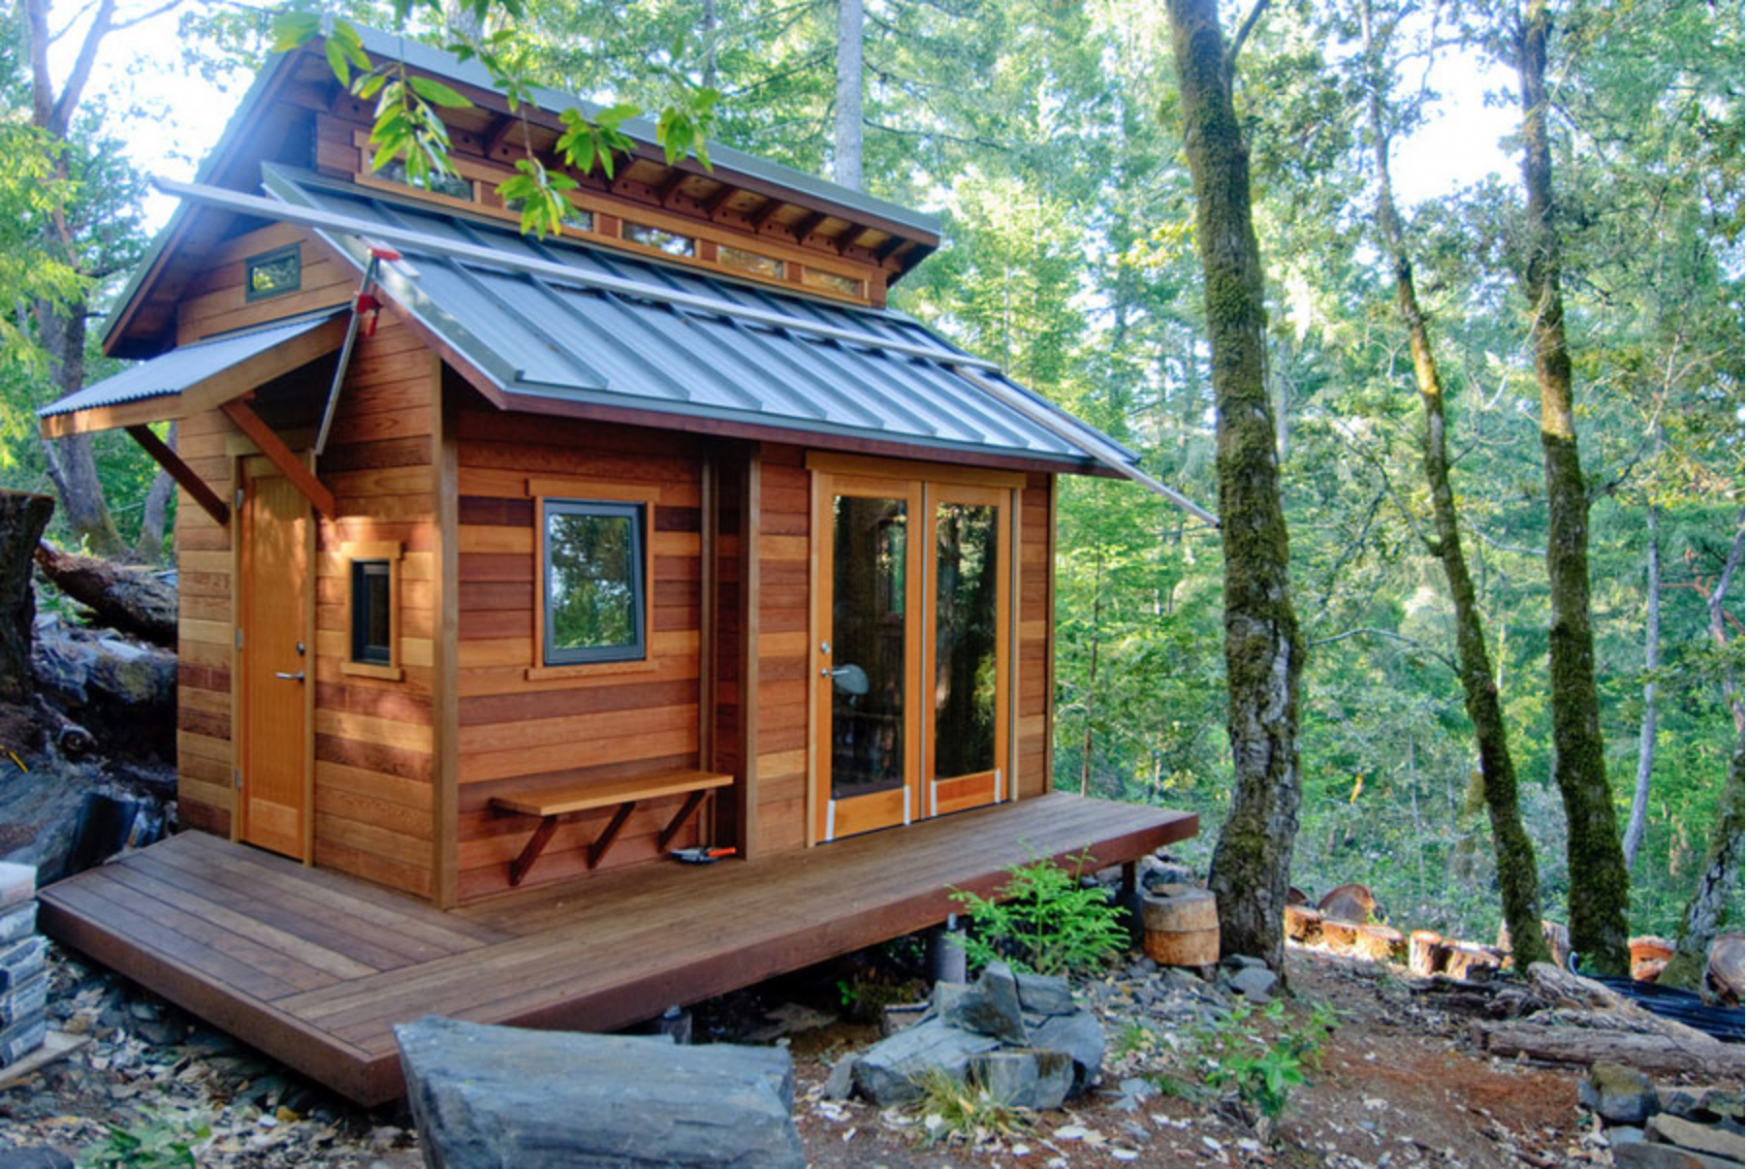 Tiny House Style - Roost In Green